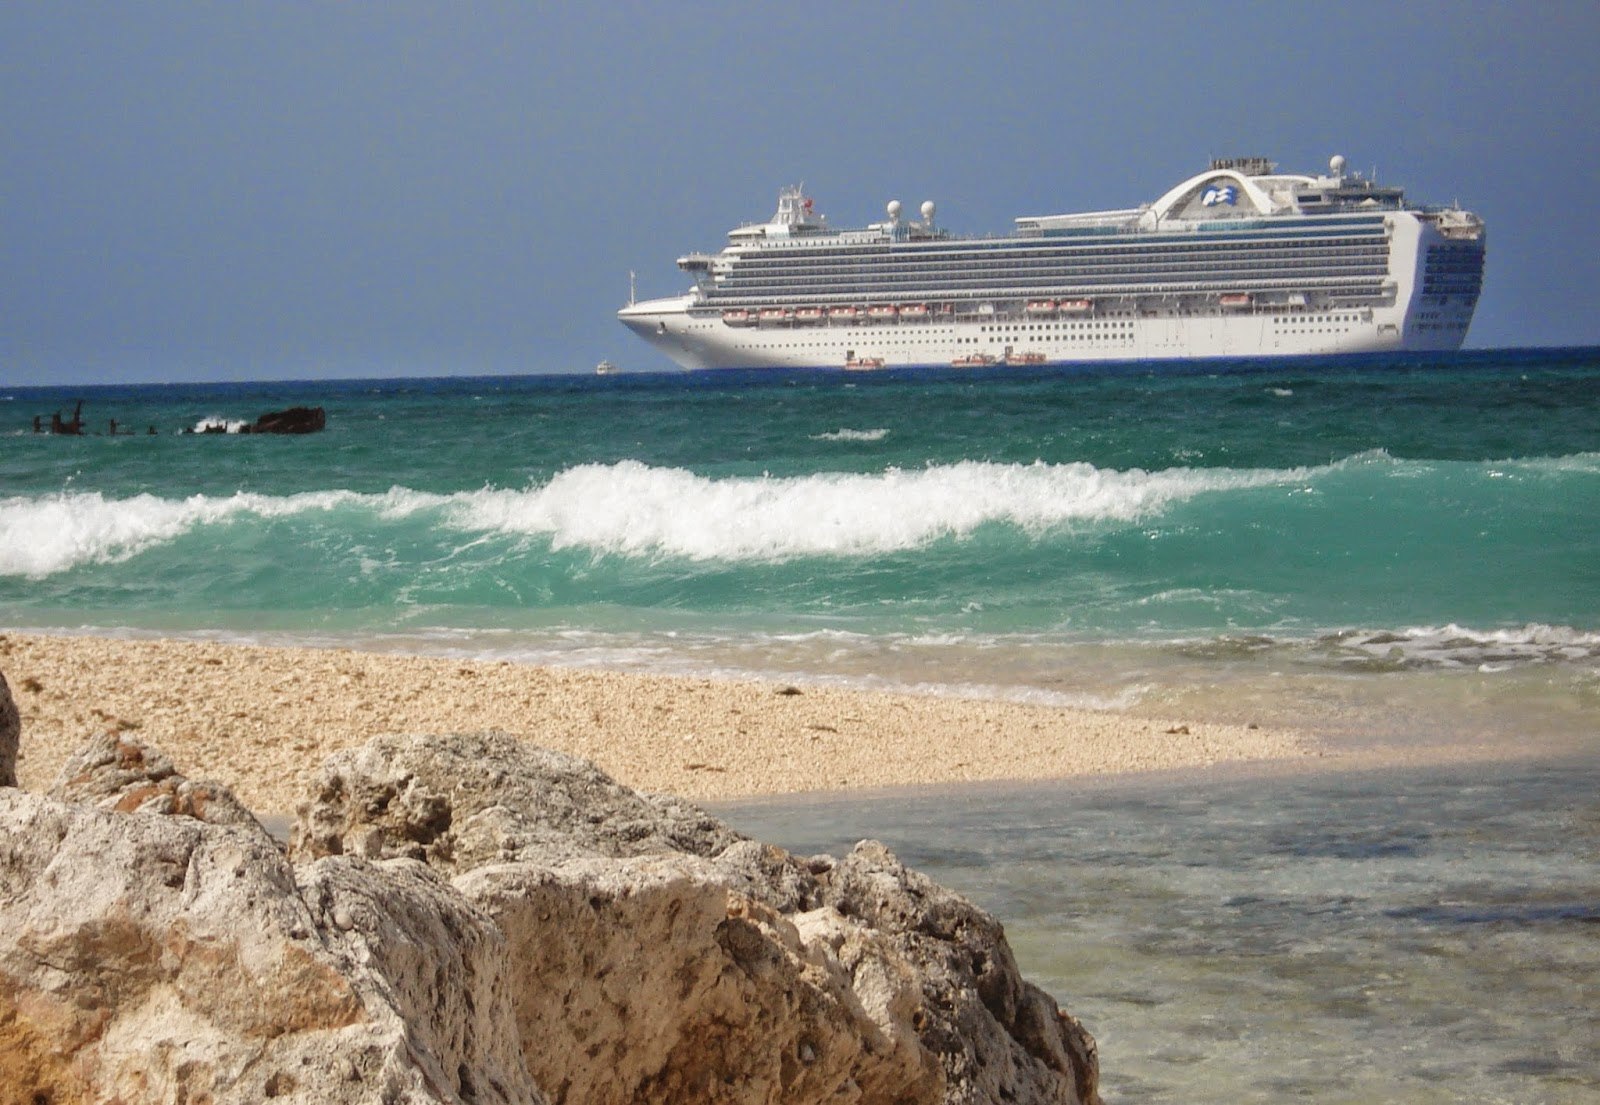 10 Reasons To Work On Cruise Ships - Love Live Travel